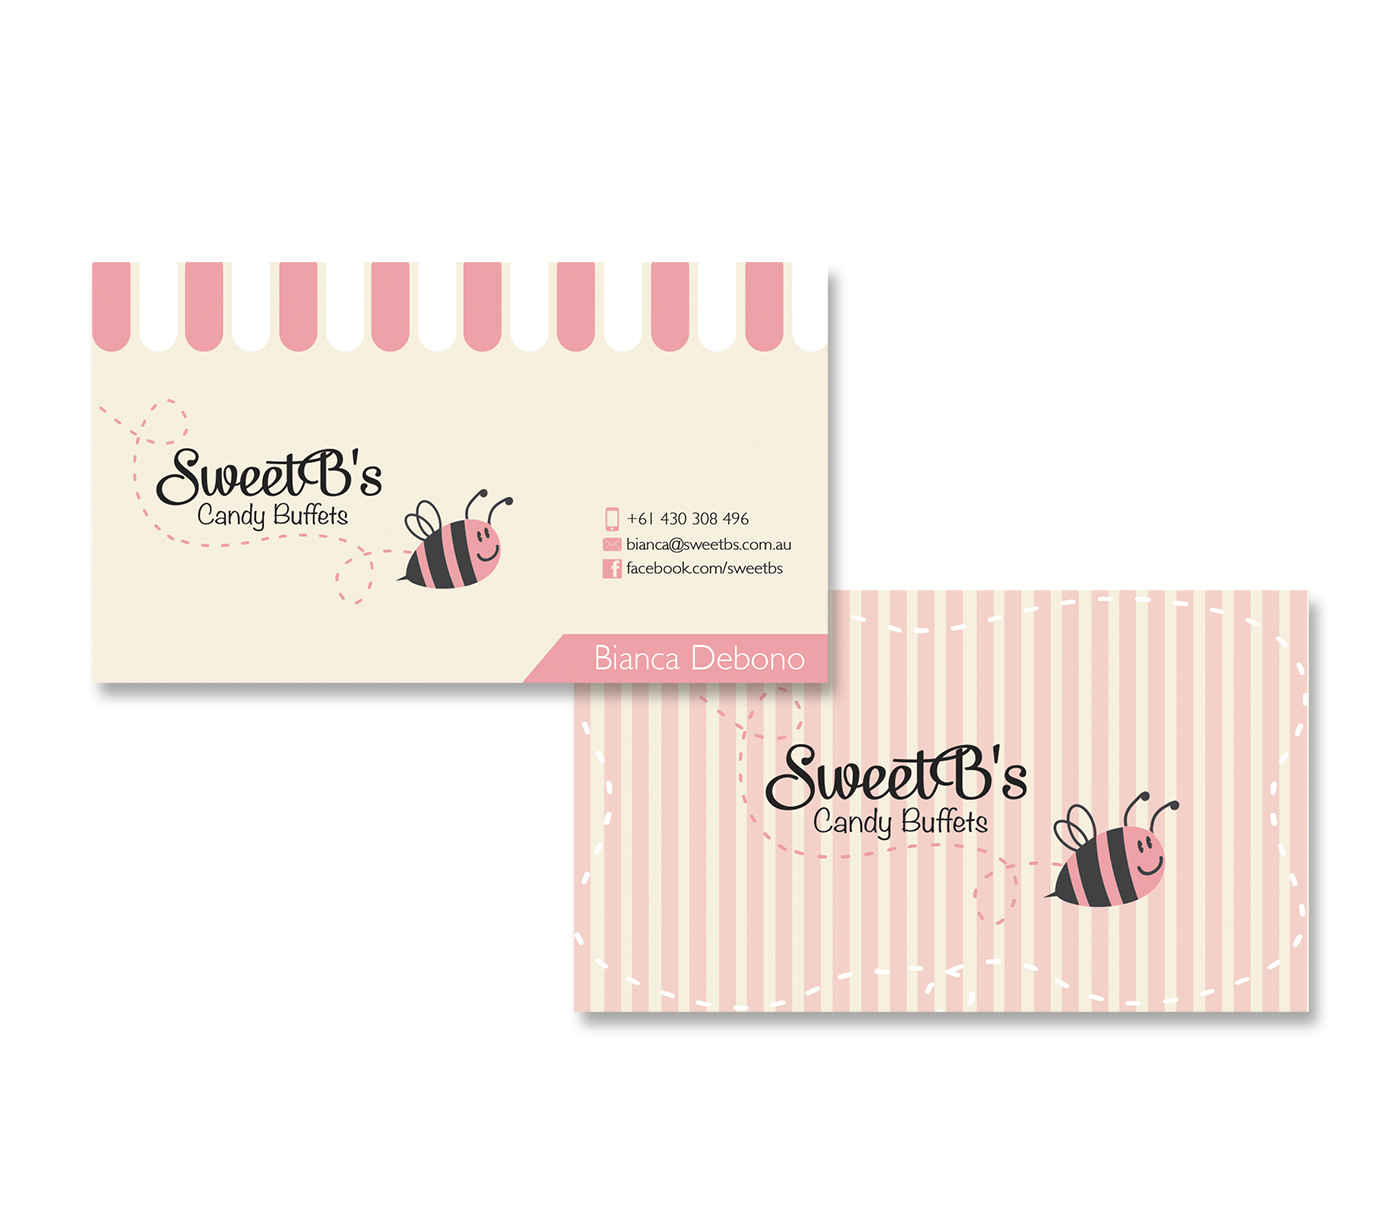 49 playful business card designs business business card design business card design by iglowcreationz for kathleen noonan tas lafemme tours design colourmoves